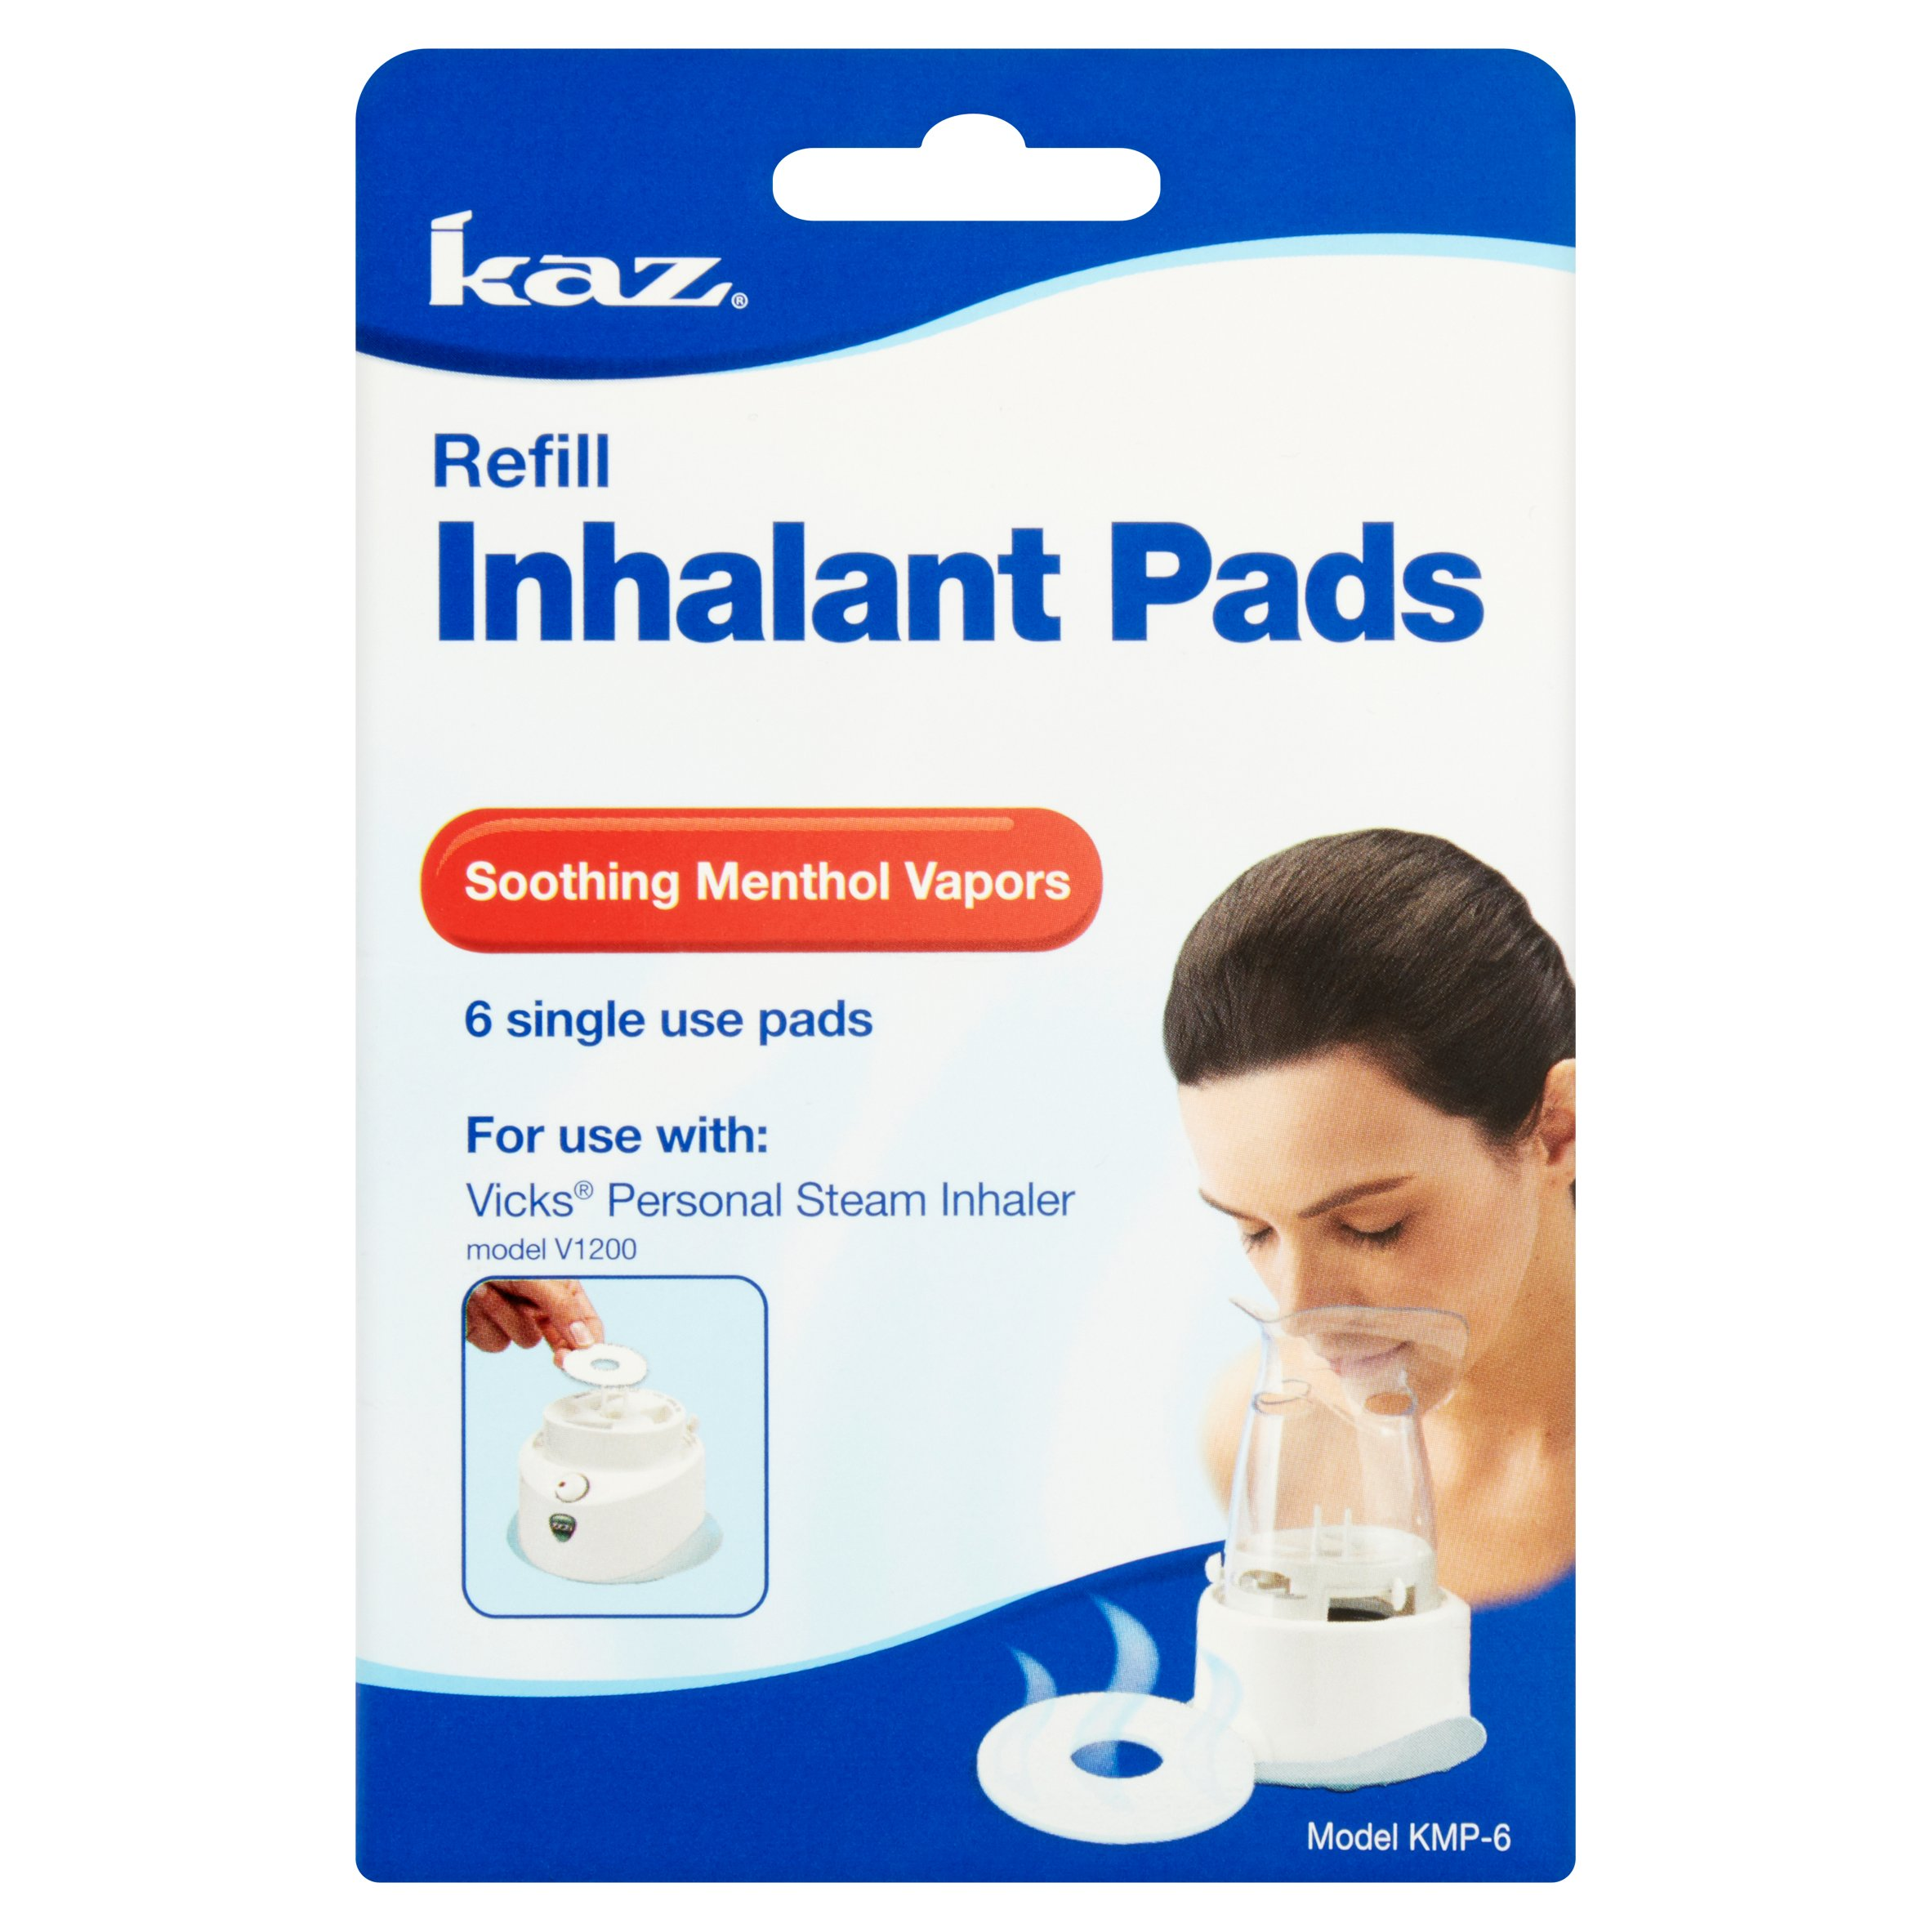 Kaz Soothing Menthol Vapors Refill Inhalant Pads, 6 count